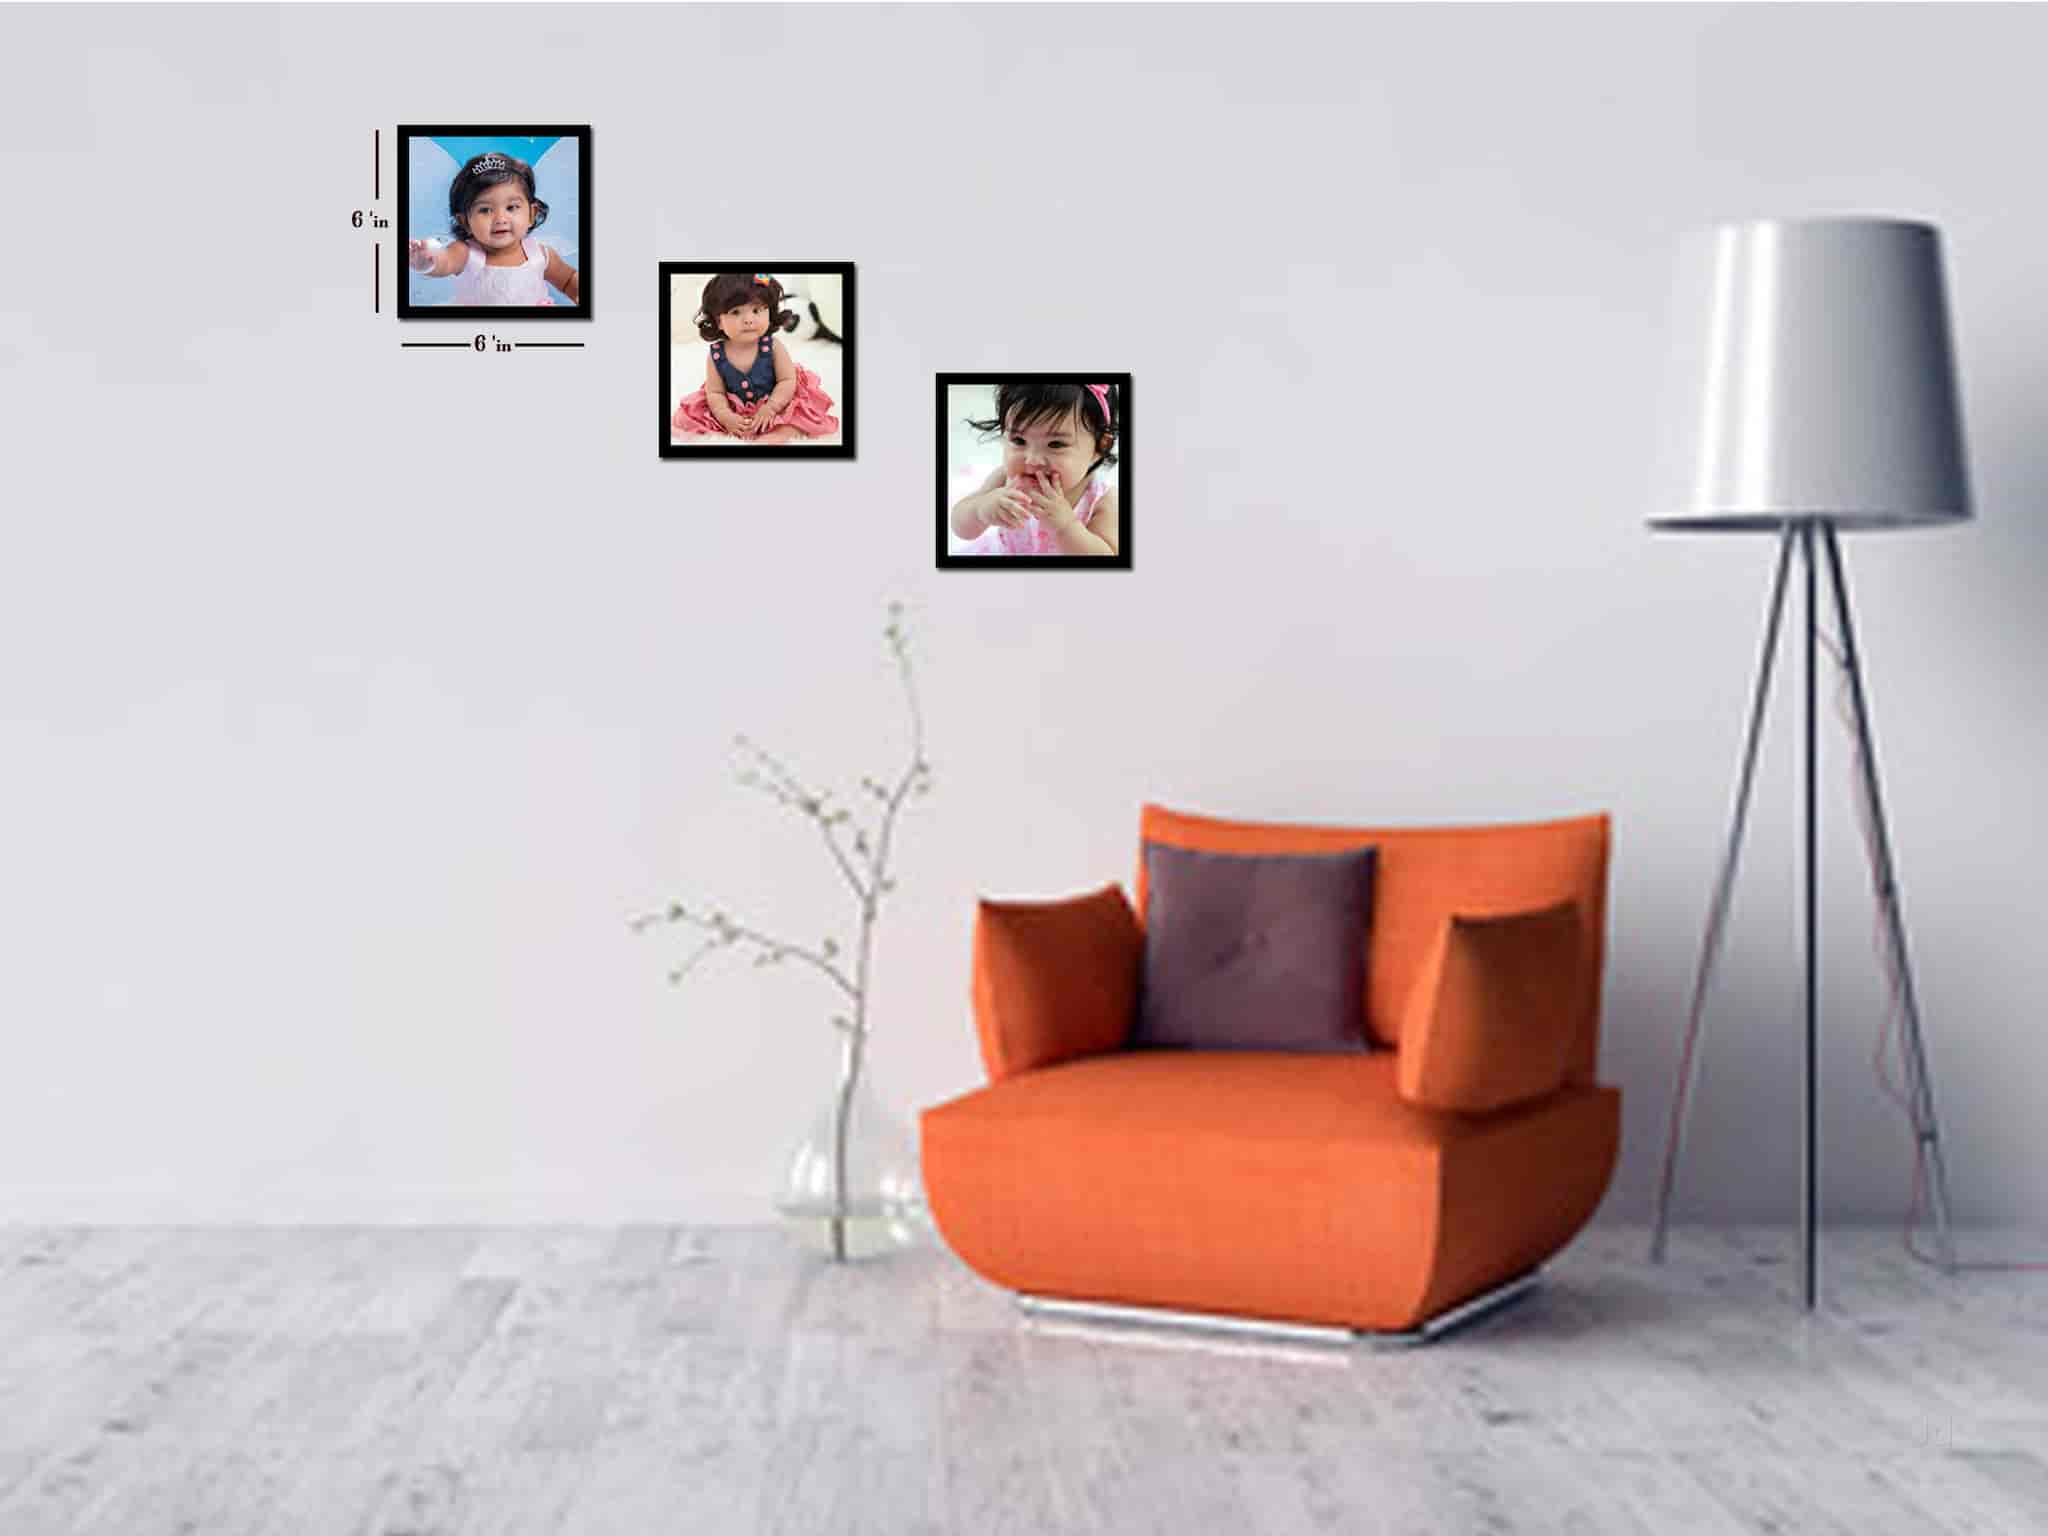 Key 3 Gifts Arts Photos, Saibaba Colony, Coimbatore- Pictures ...